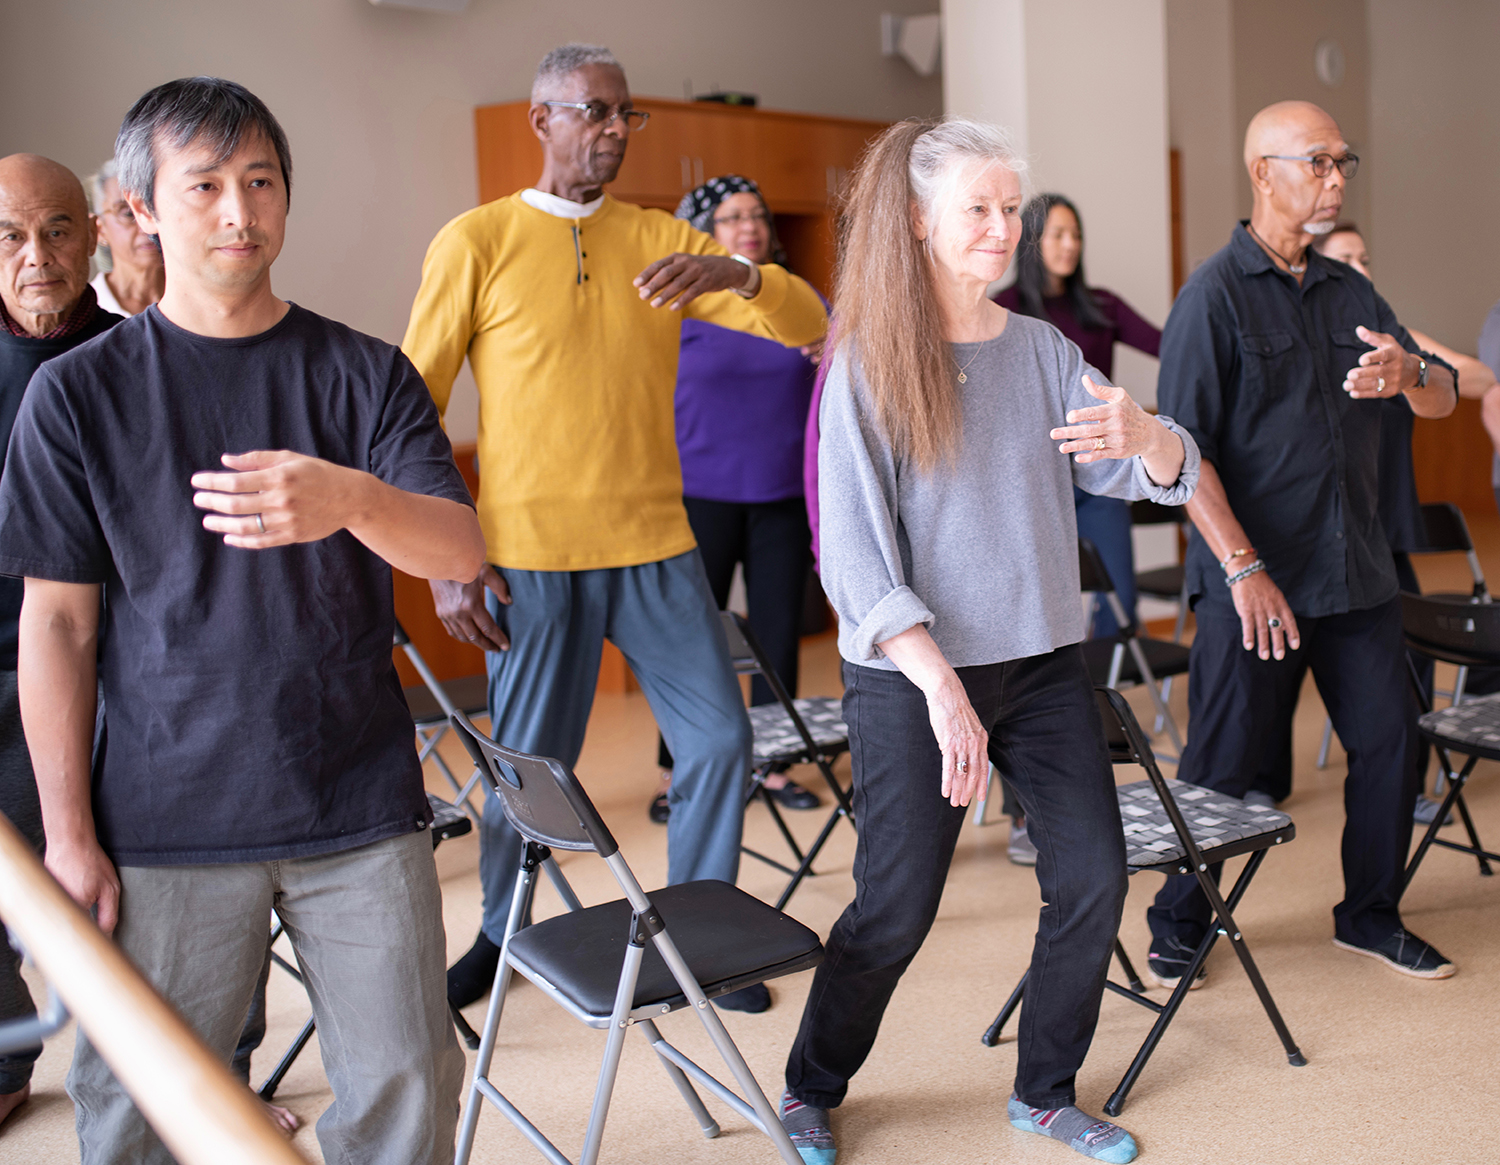 Participants practice Ward Off move